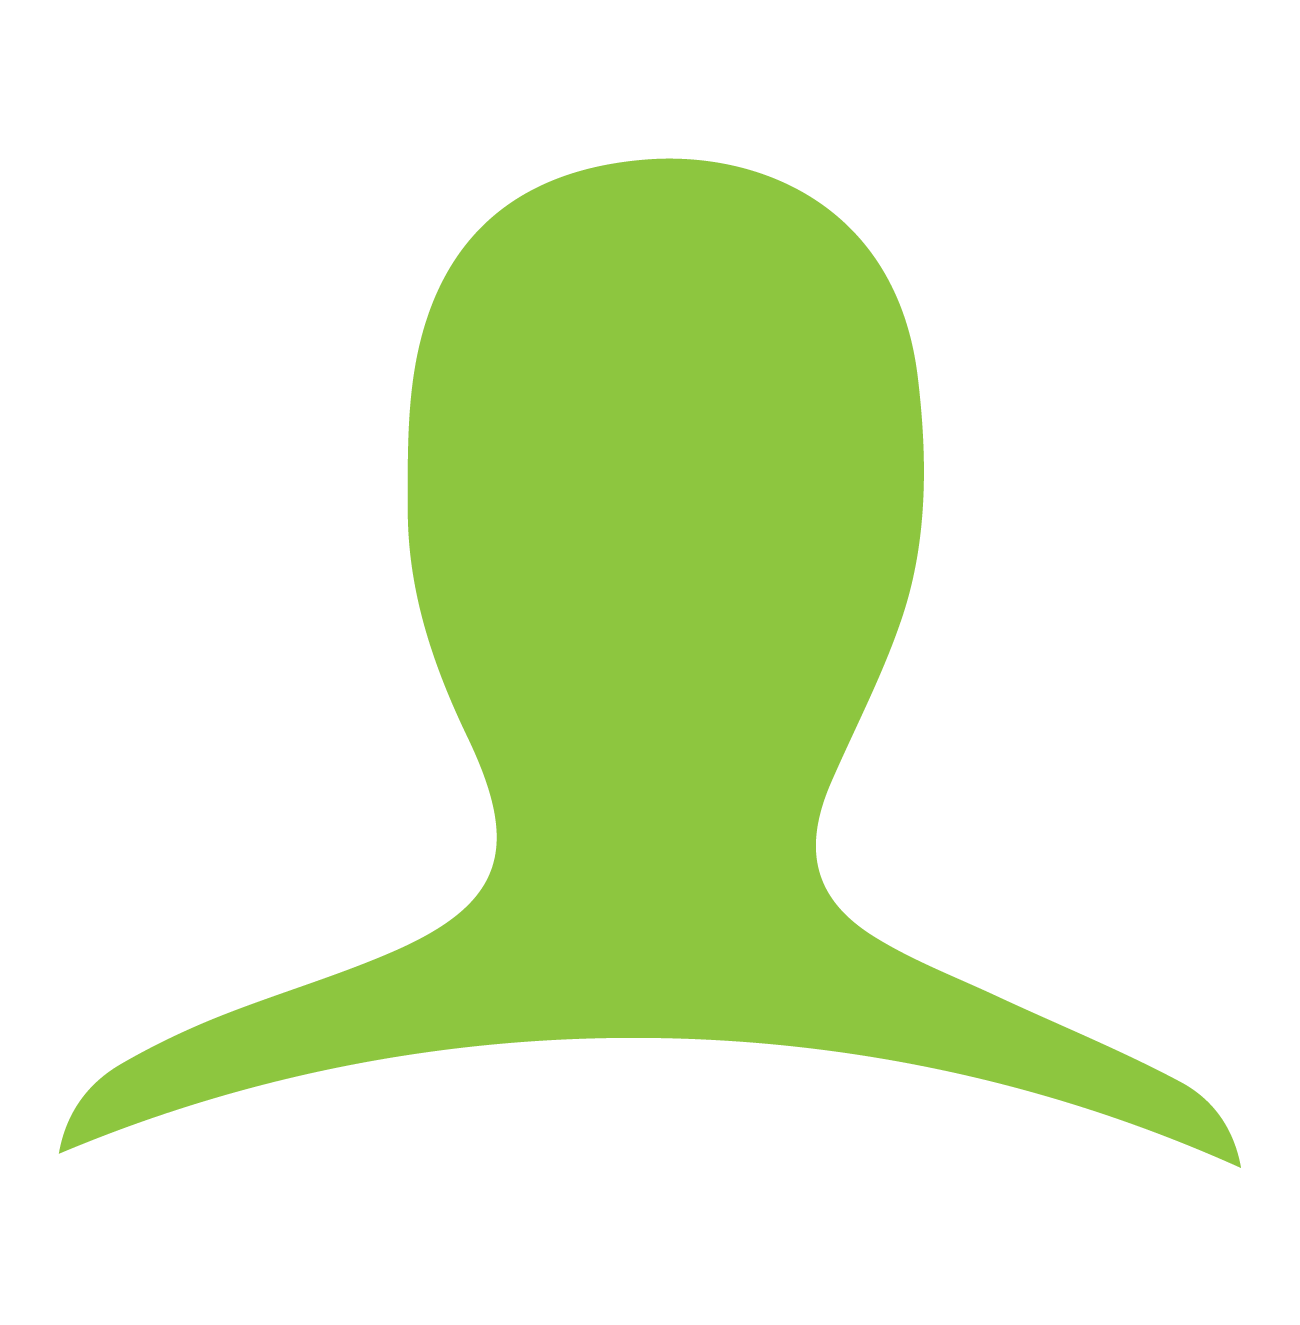 pac-logo-green-silhouette.png